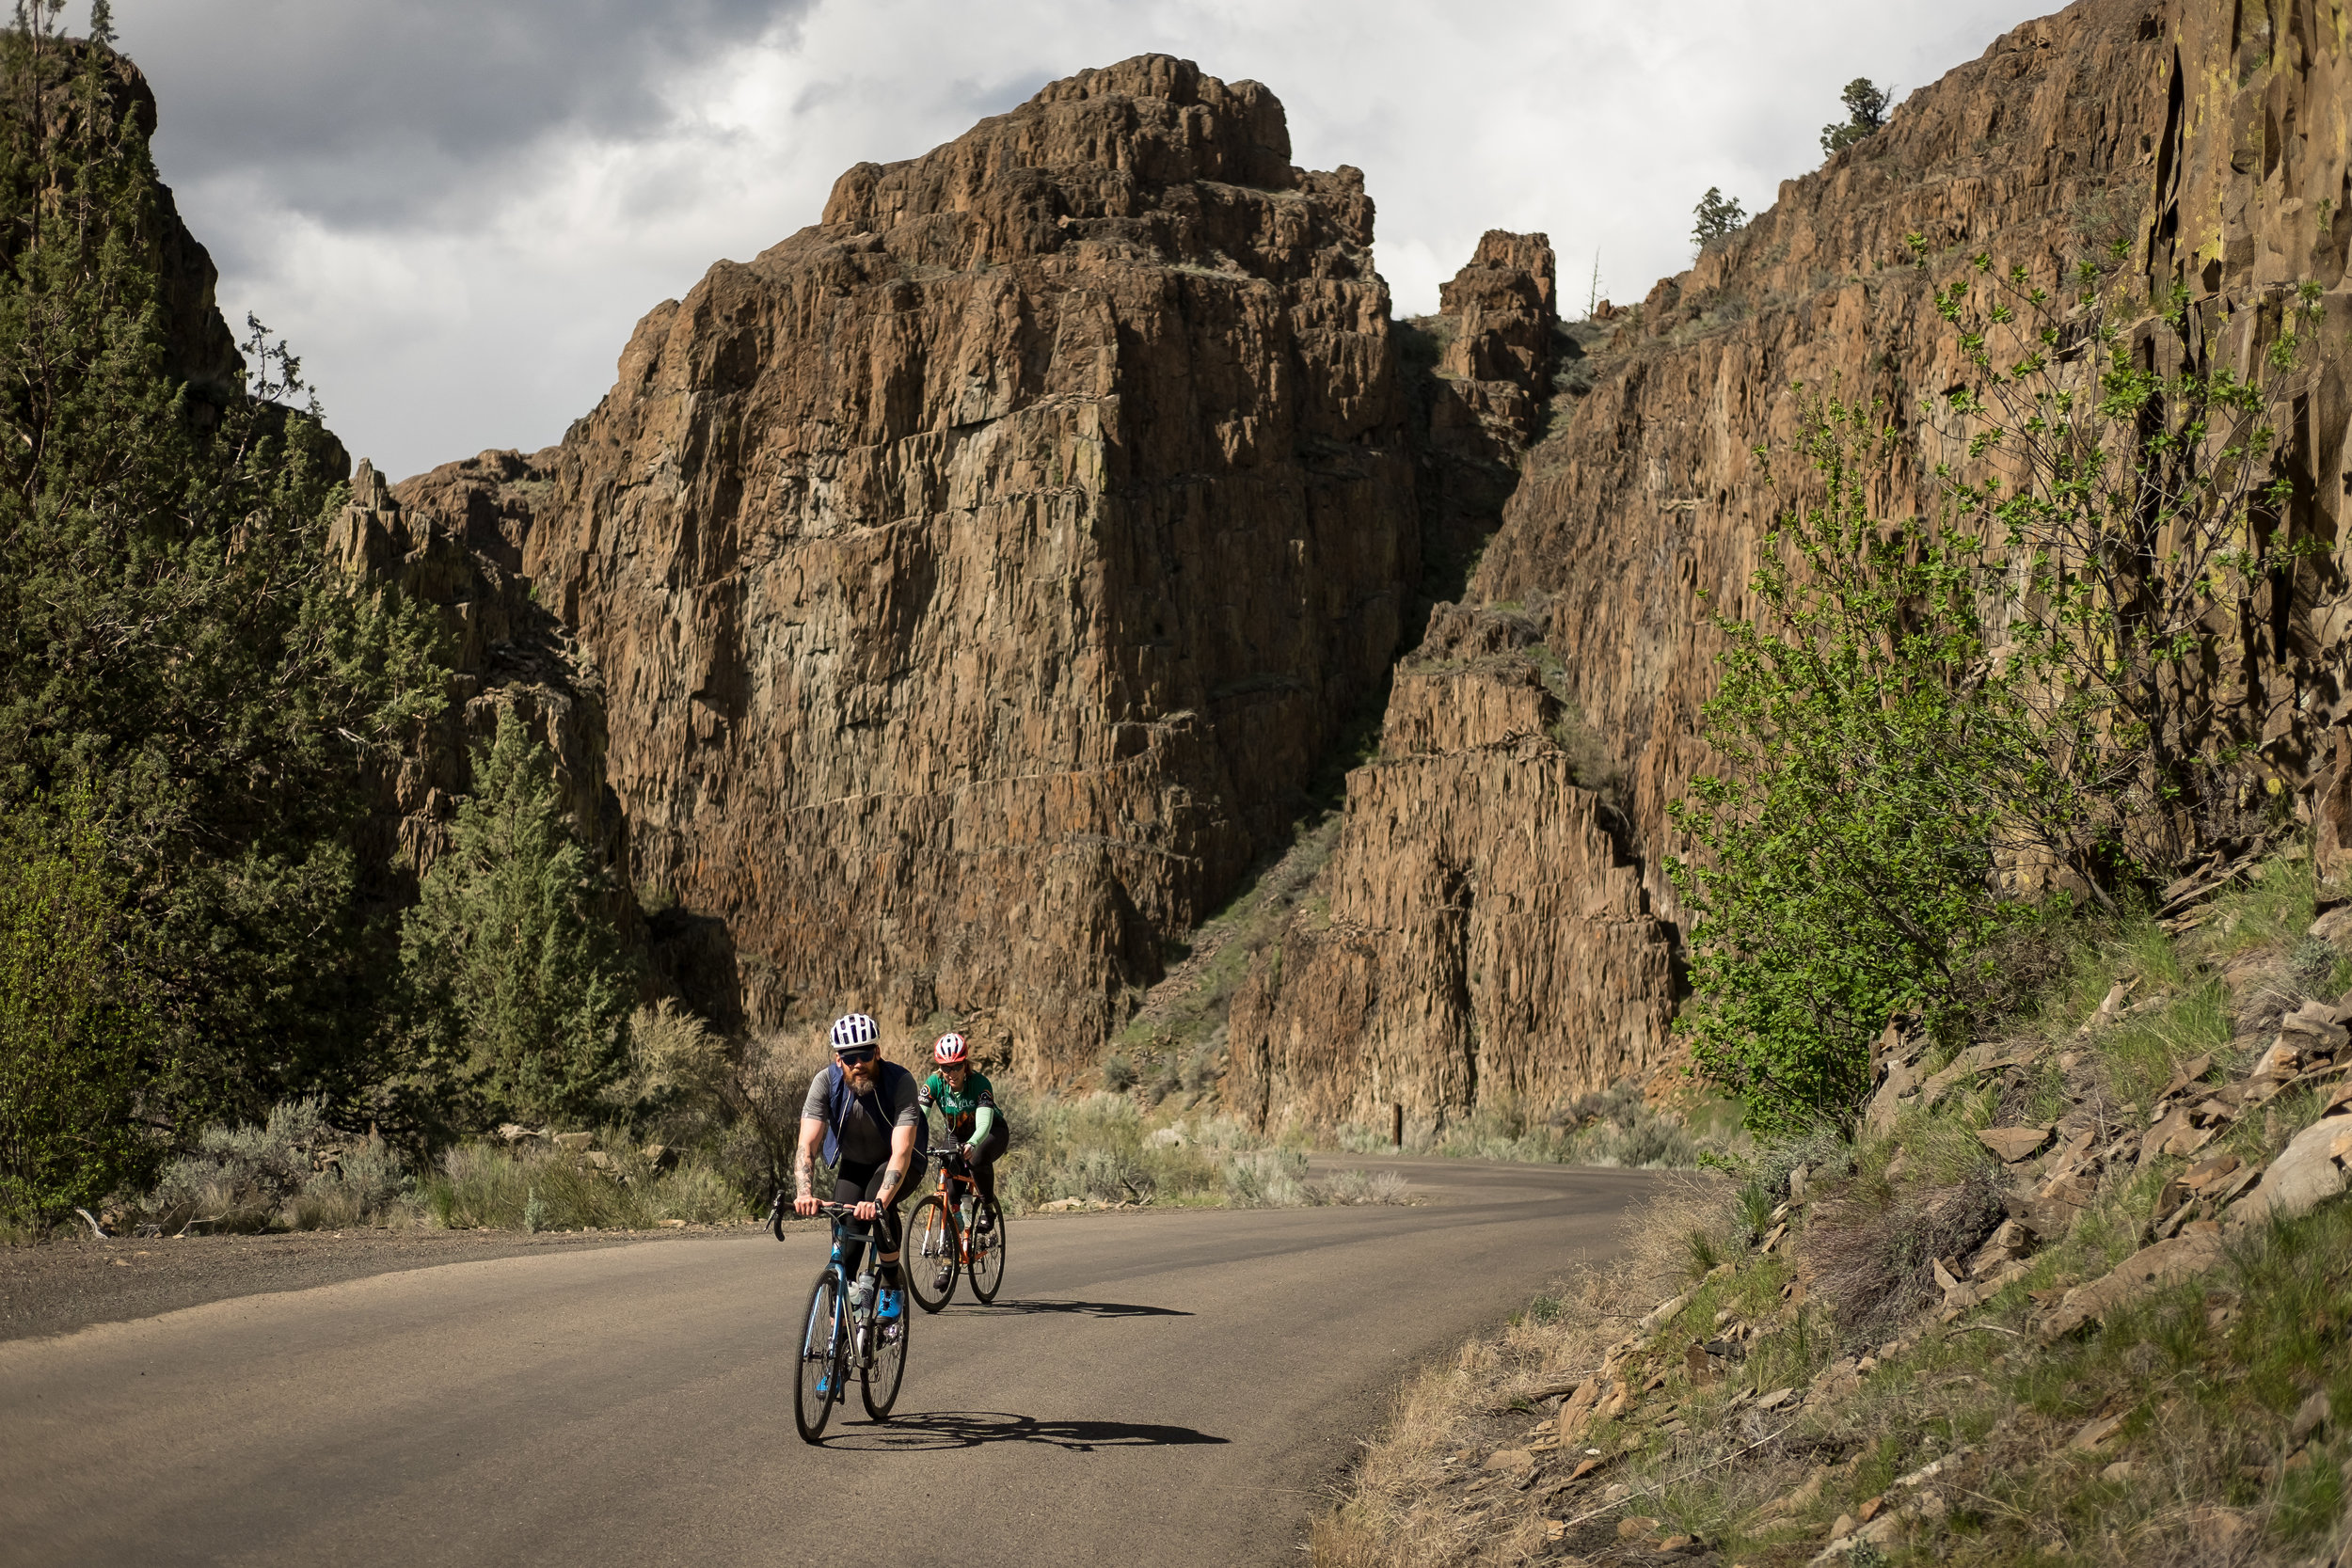 World class bicycle touring. -